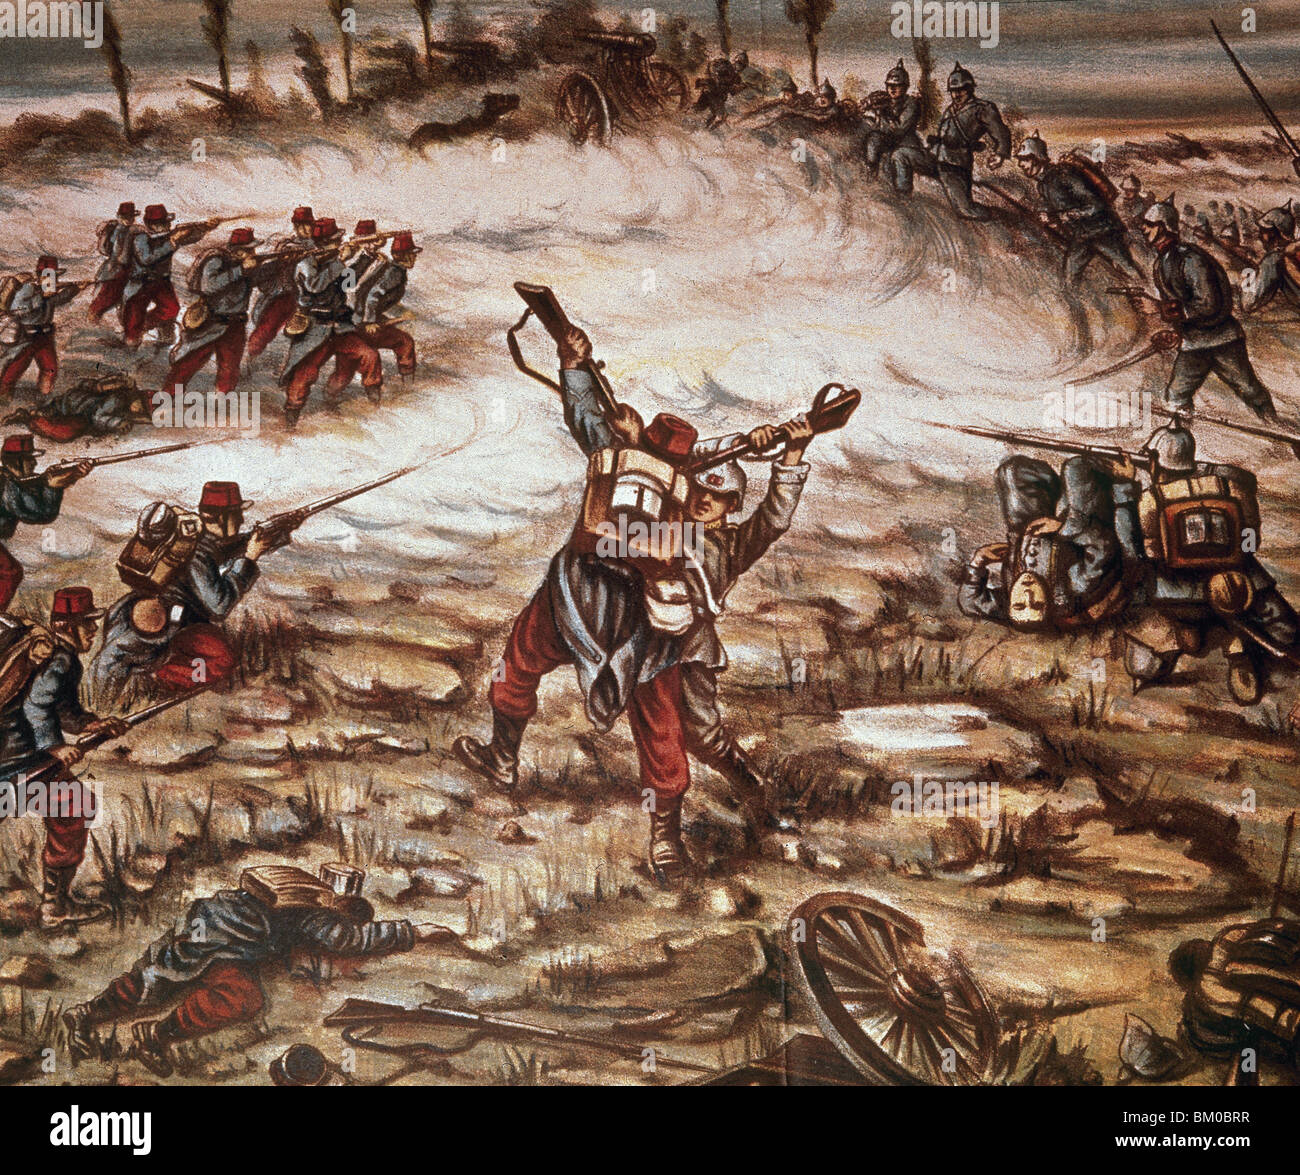 WORLD WAR I (1914-1918). Battle between German and French troops. Drawing. - Stock Image